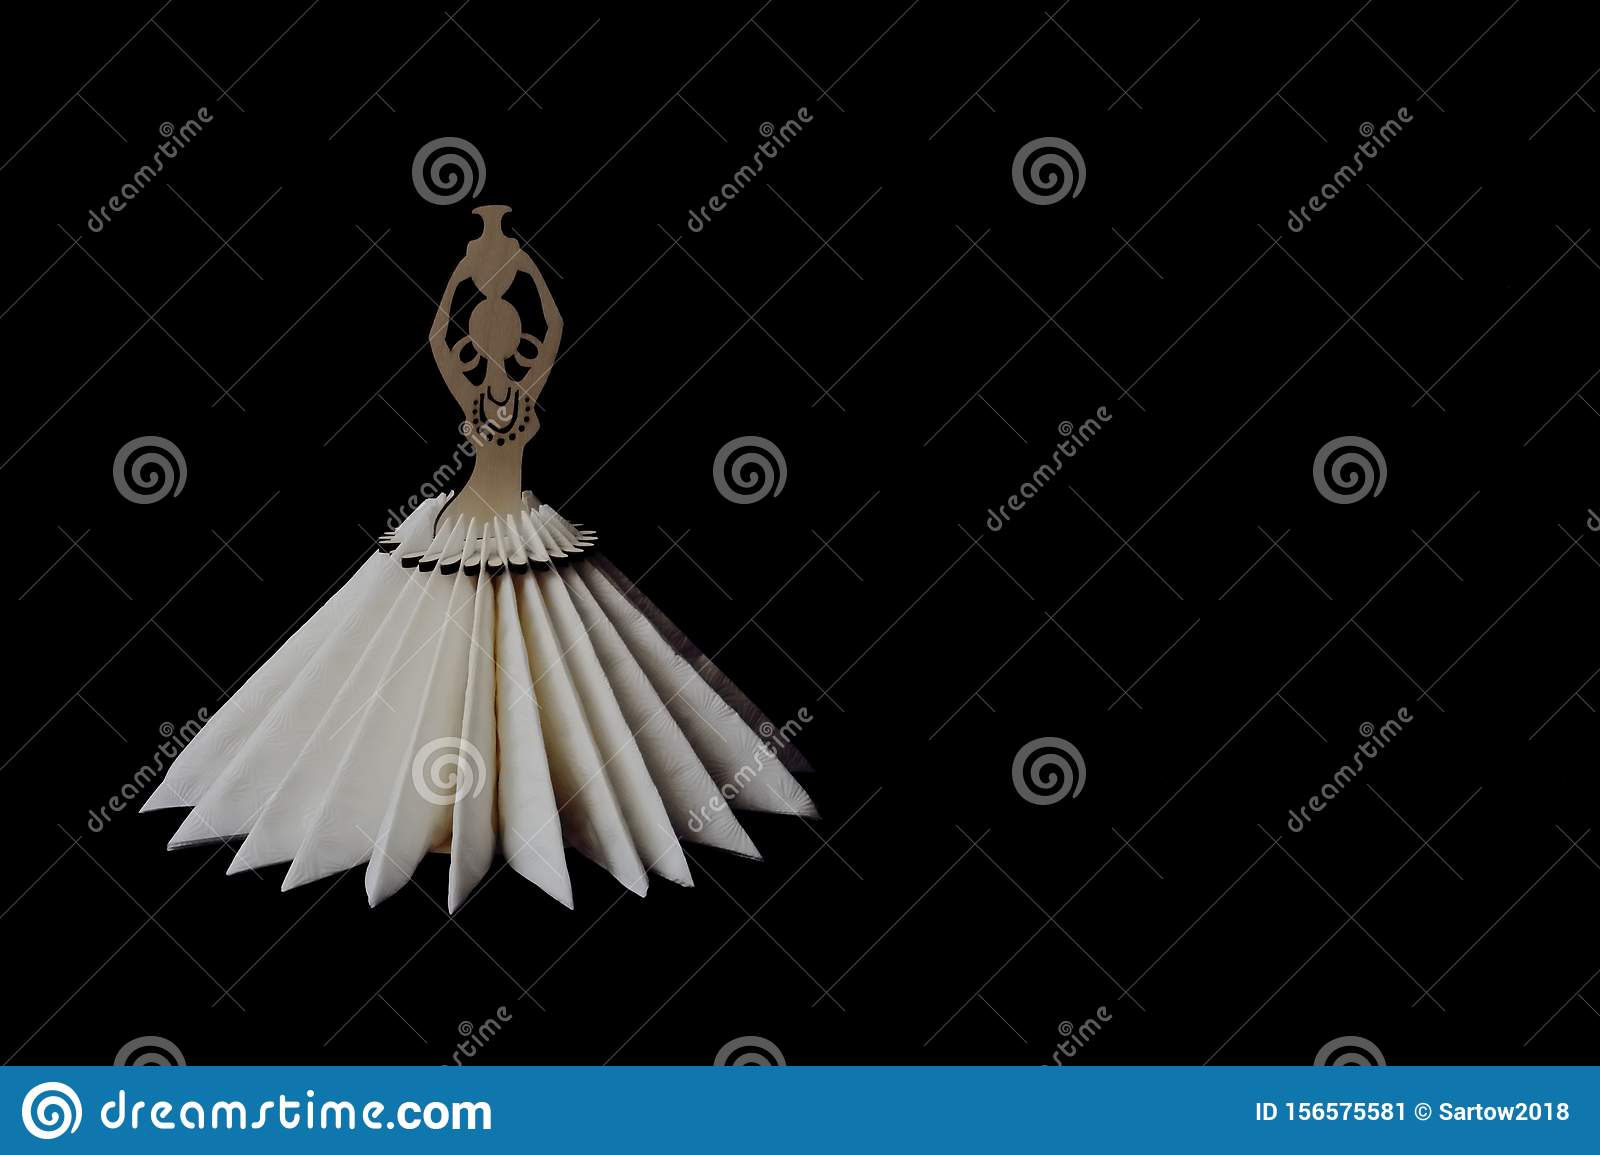 Vintage Wooden Napkin Holder In Shape Of An African Woman With Jug And Skirt Of White Napkins On Black Background Concept Stock Image Image Of Element Fantasy 156575581